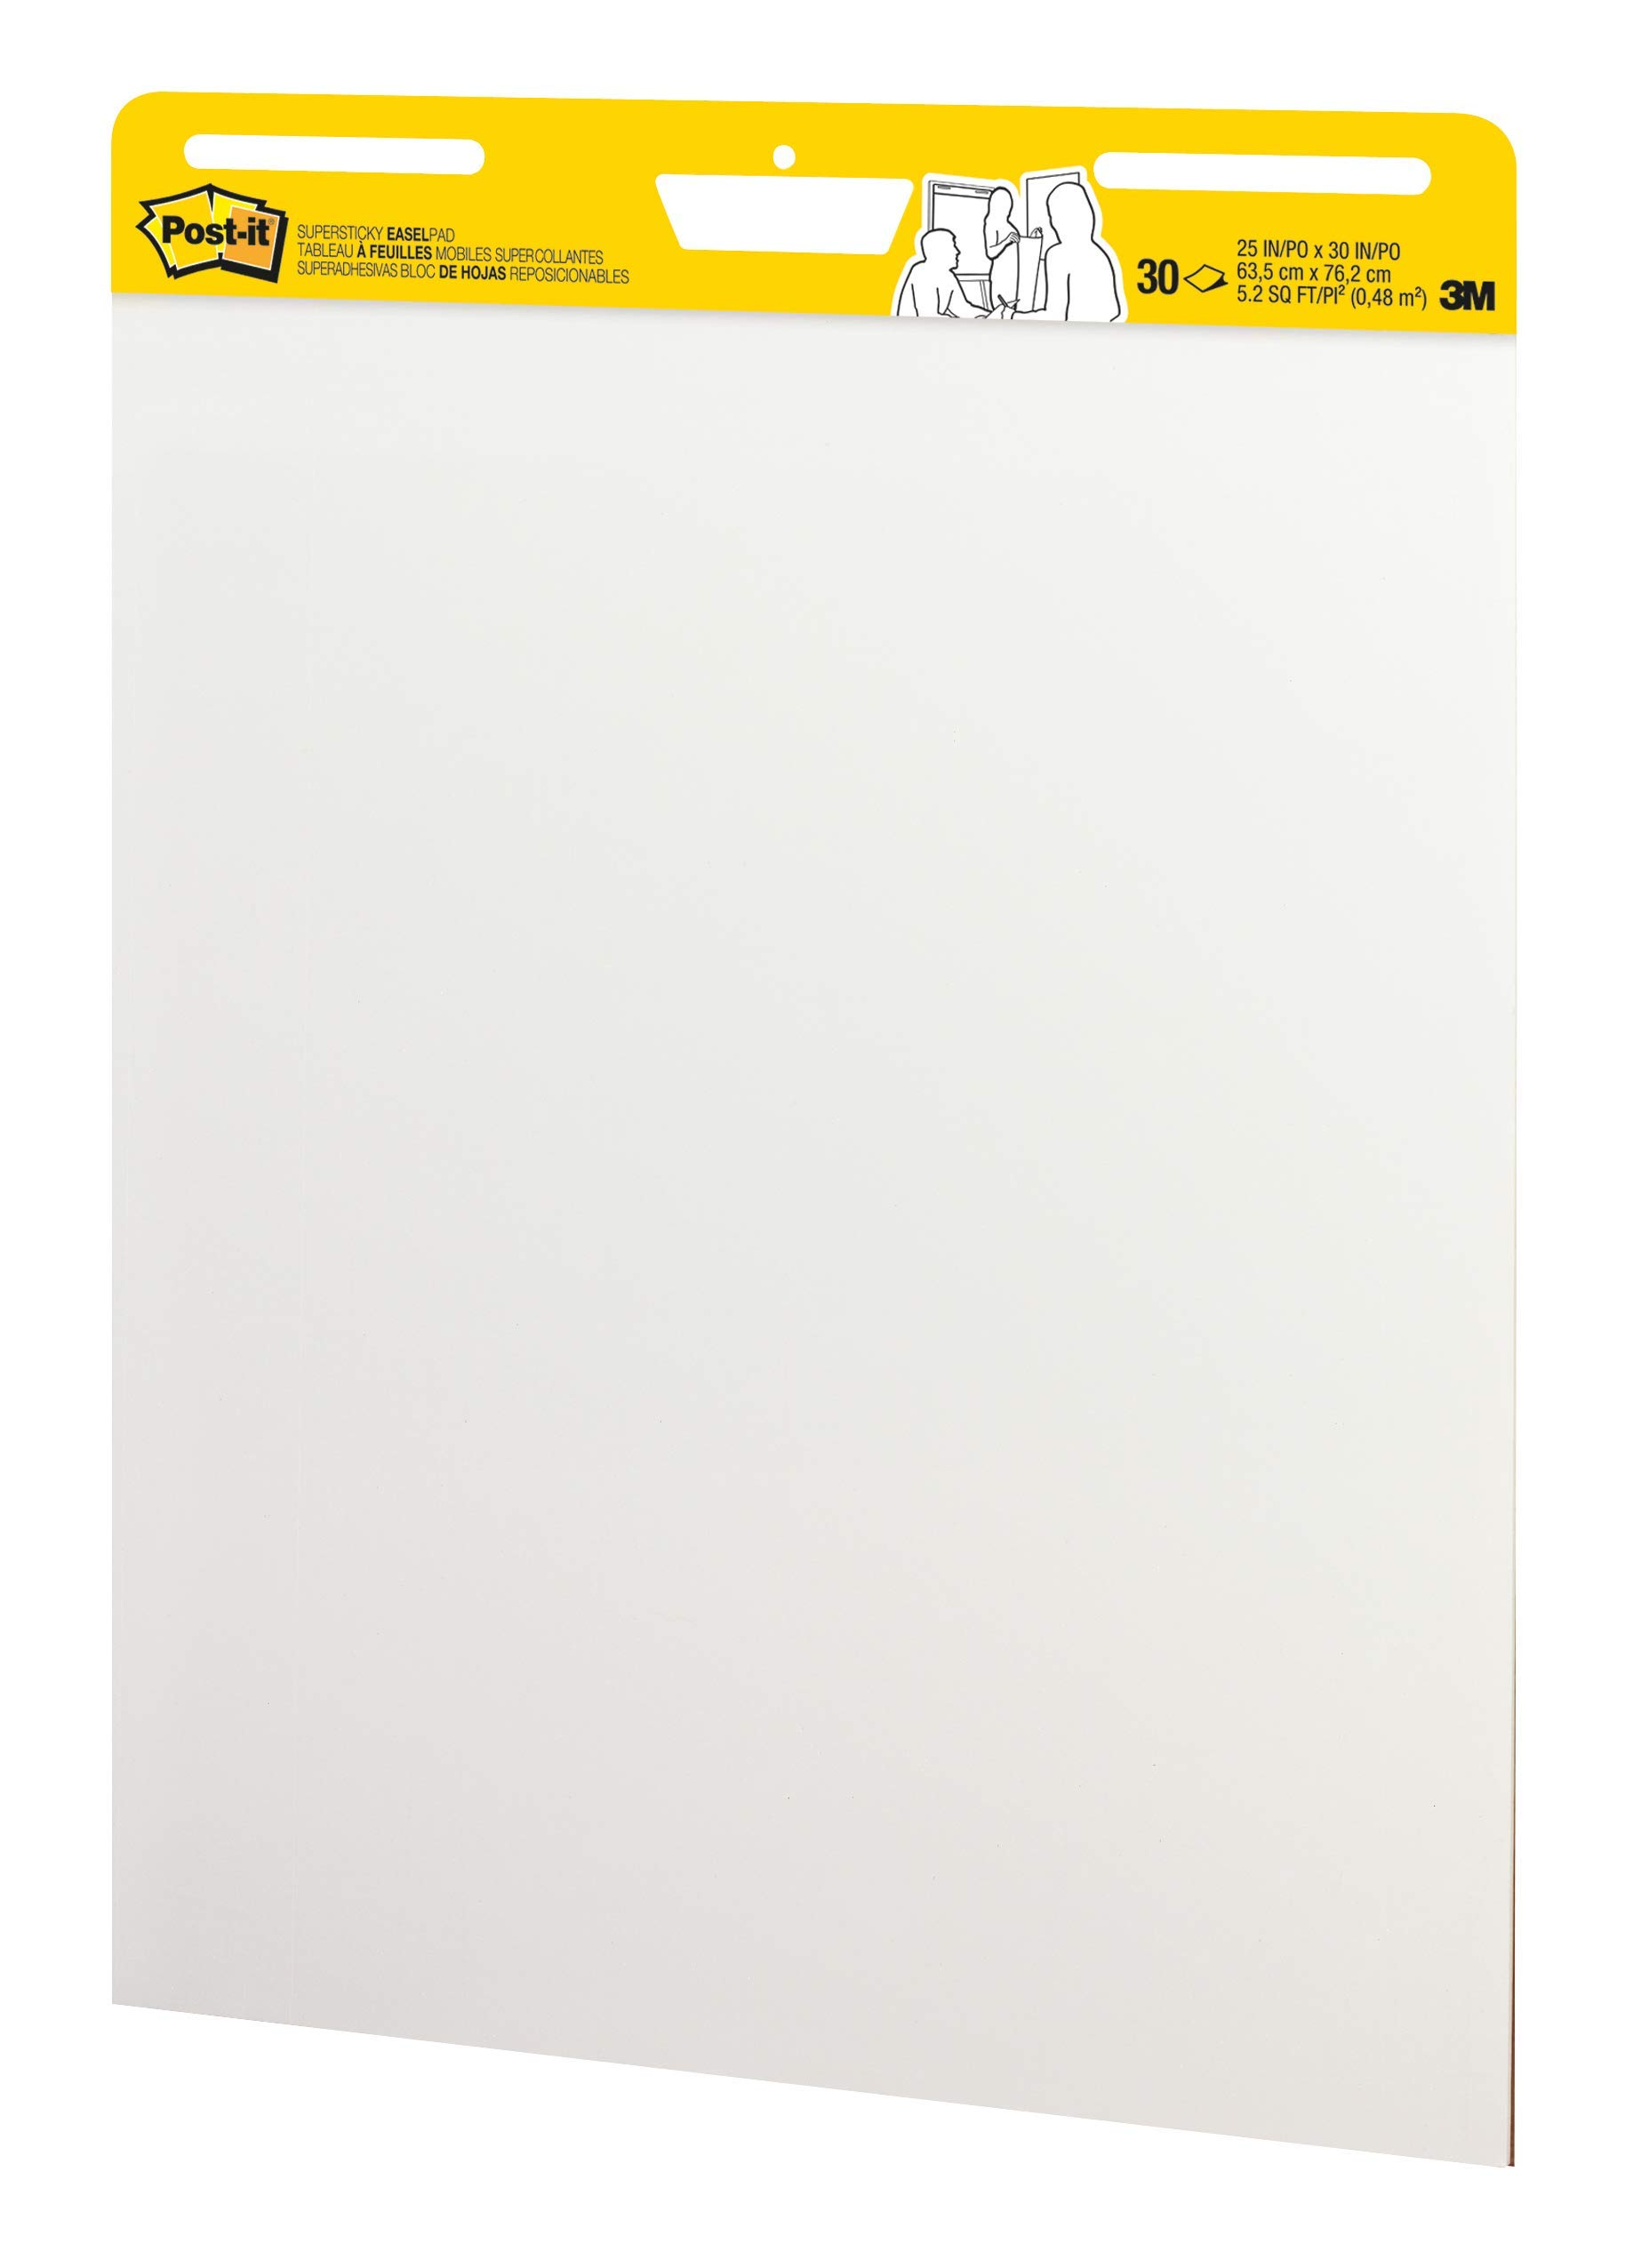 Post-it Super Sticky Easel Pad, 25 x 30 Inches, 30 Sheets/Pad, 6 Pads (559VAD6PK), Large White Premium Self Stick Flip Chart Paper, Super Sticking Power (Renewed) by Post-it (Image #4)